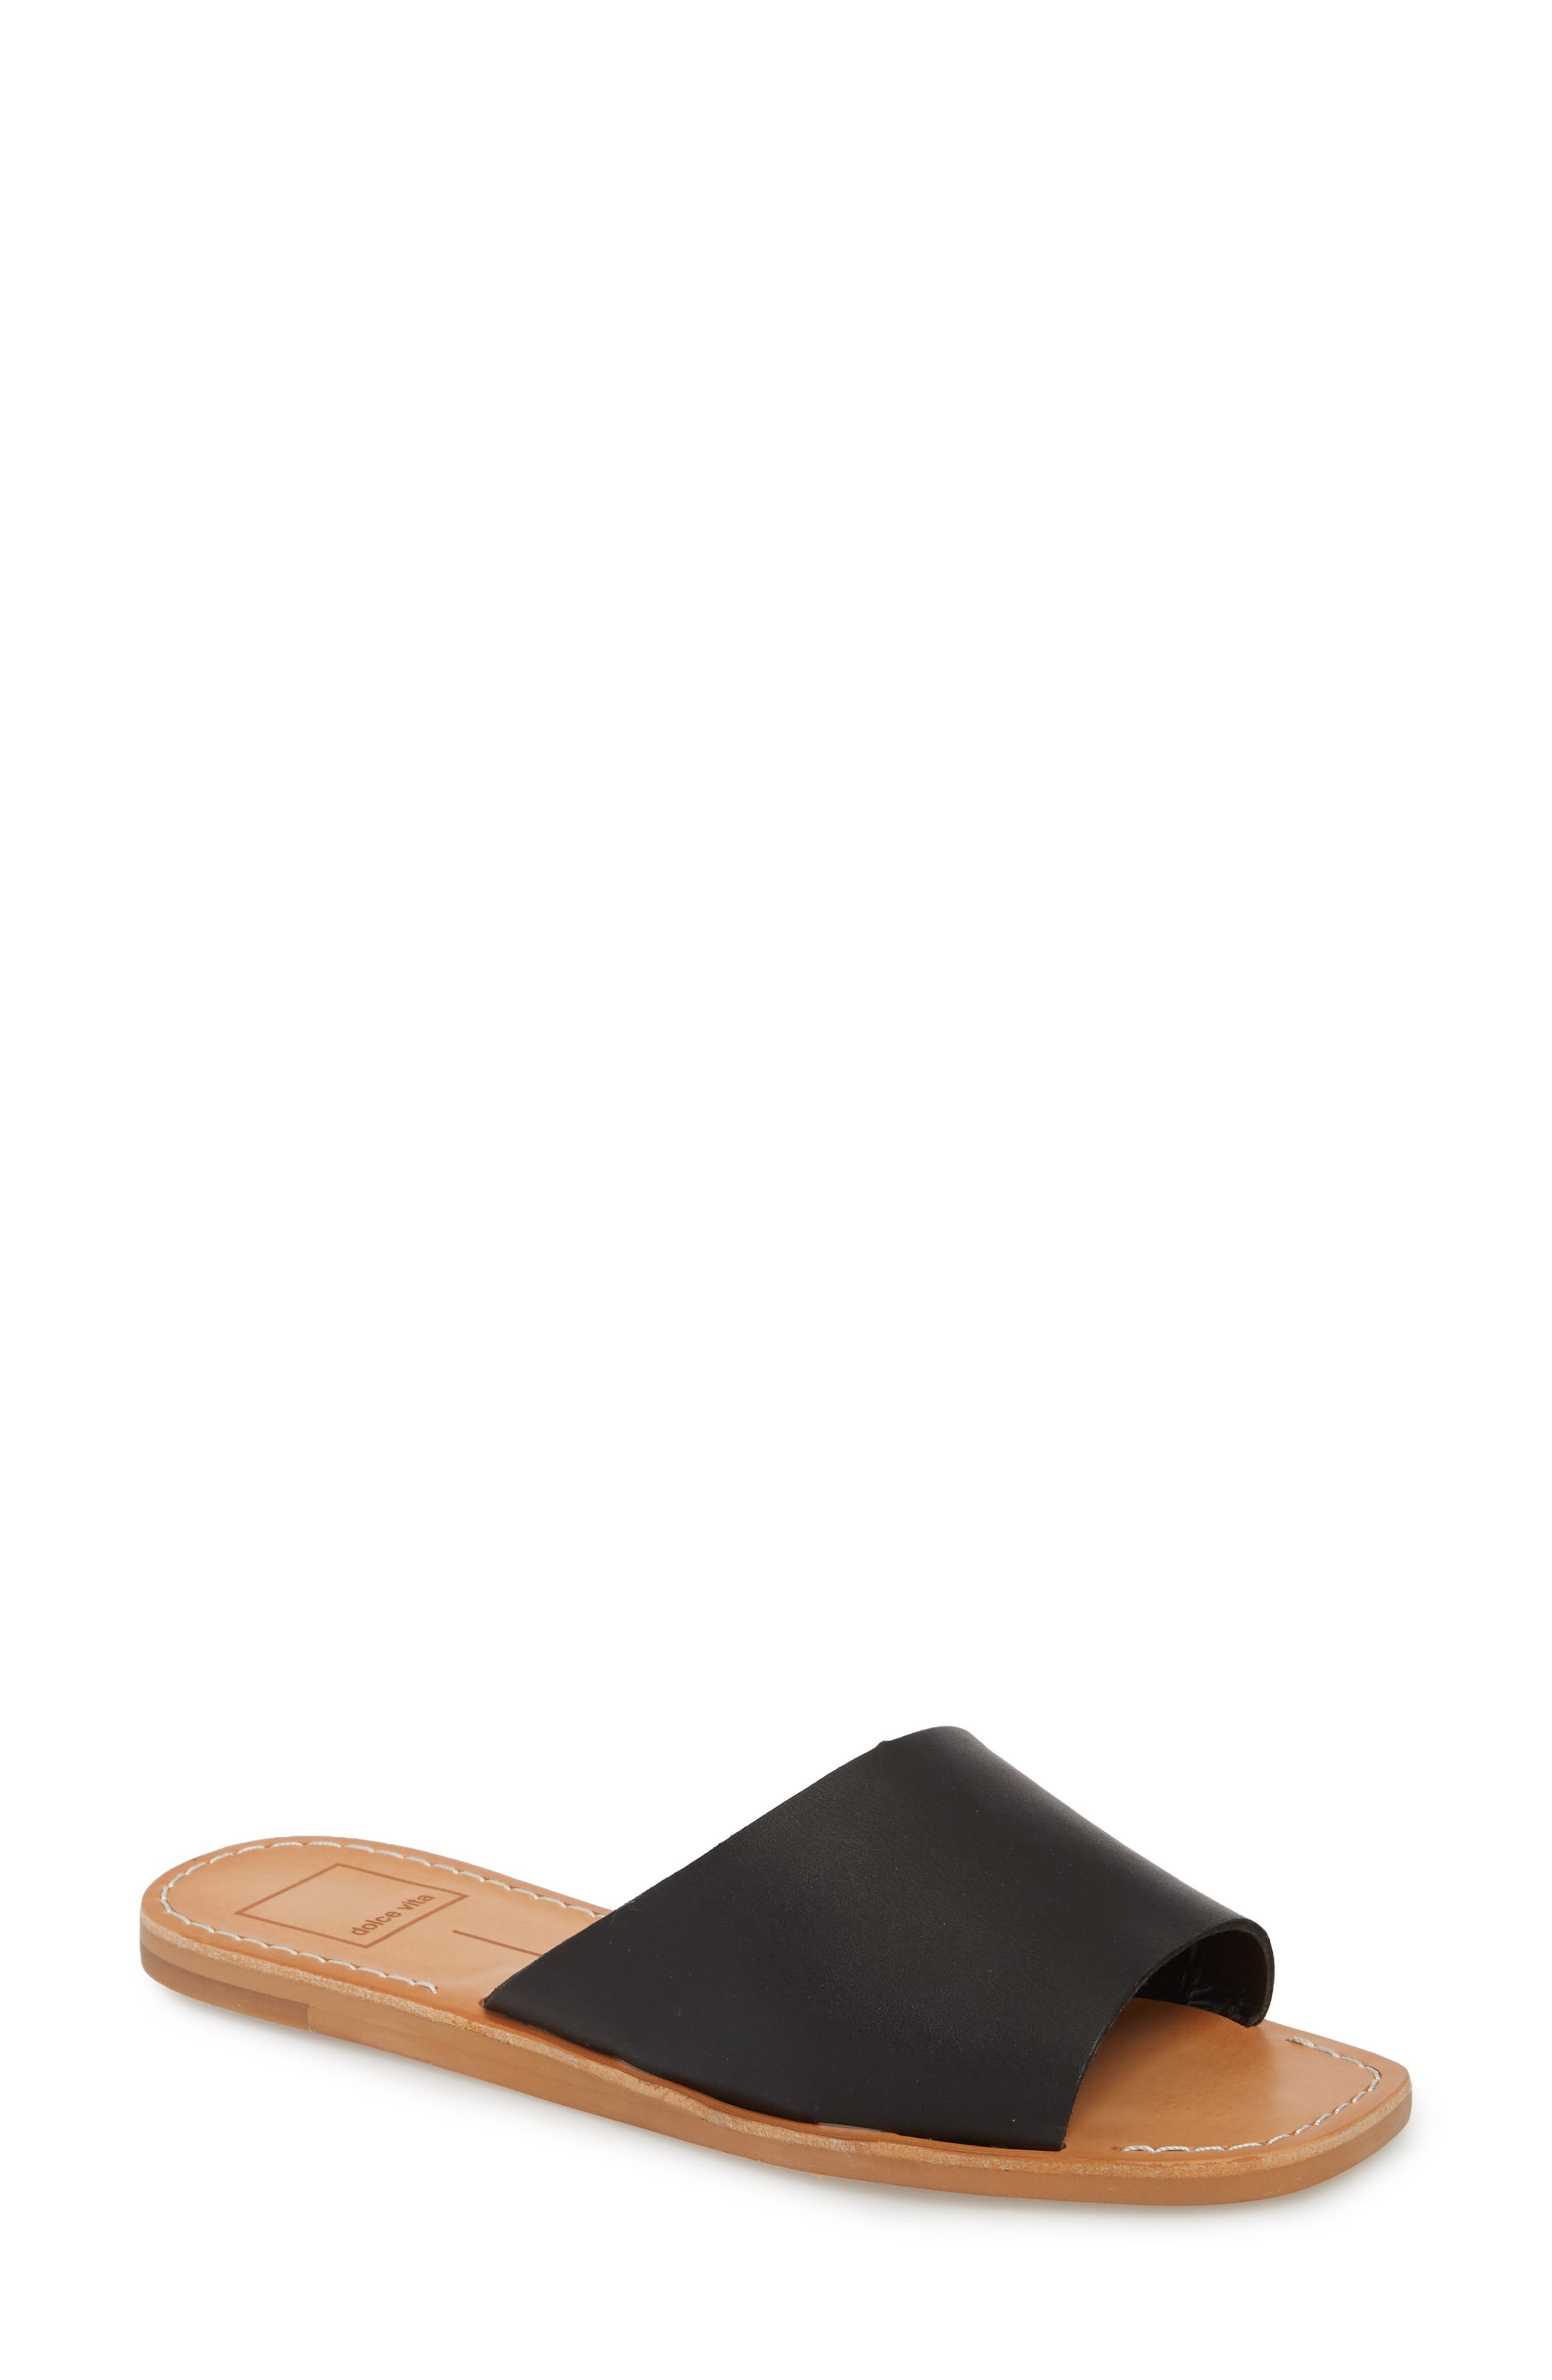 Cato Asymmetrical Slide Sandal,                         Main,                         color, 001